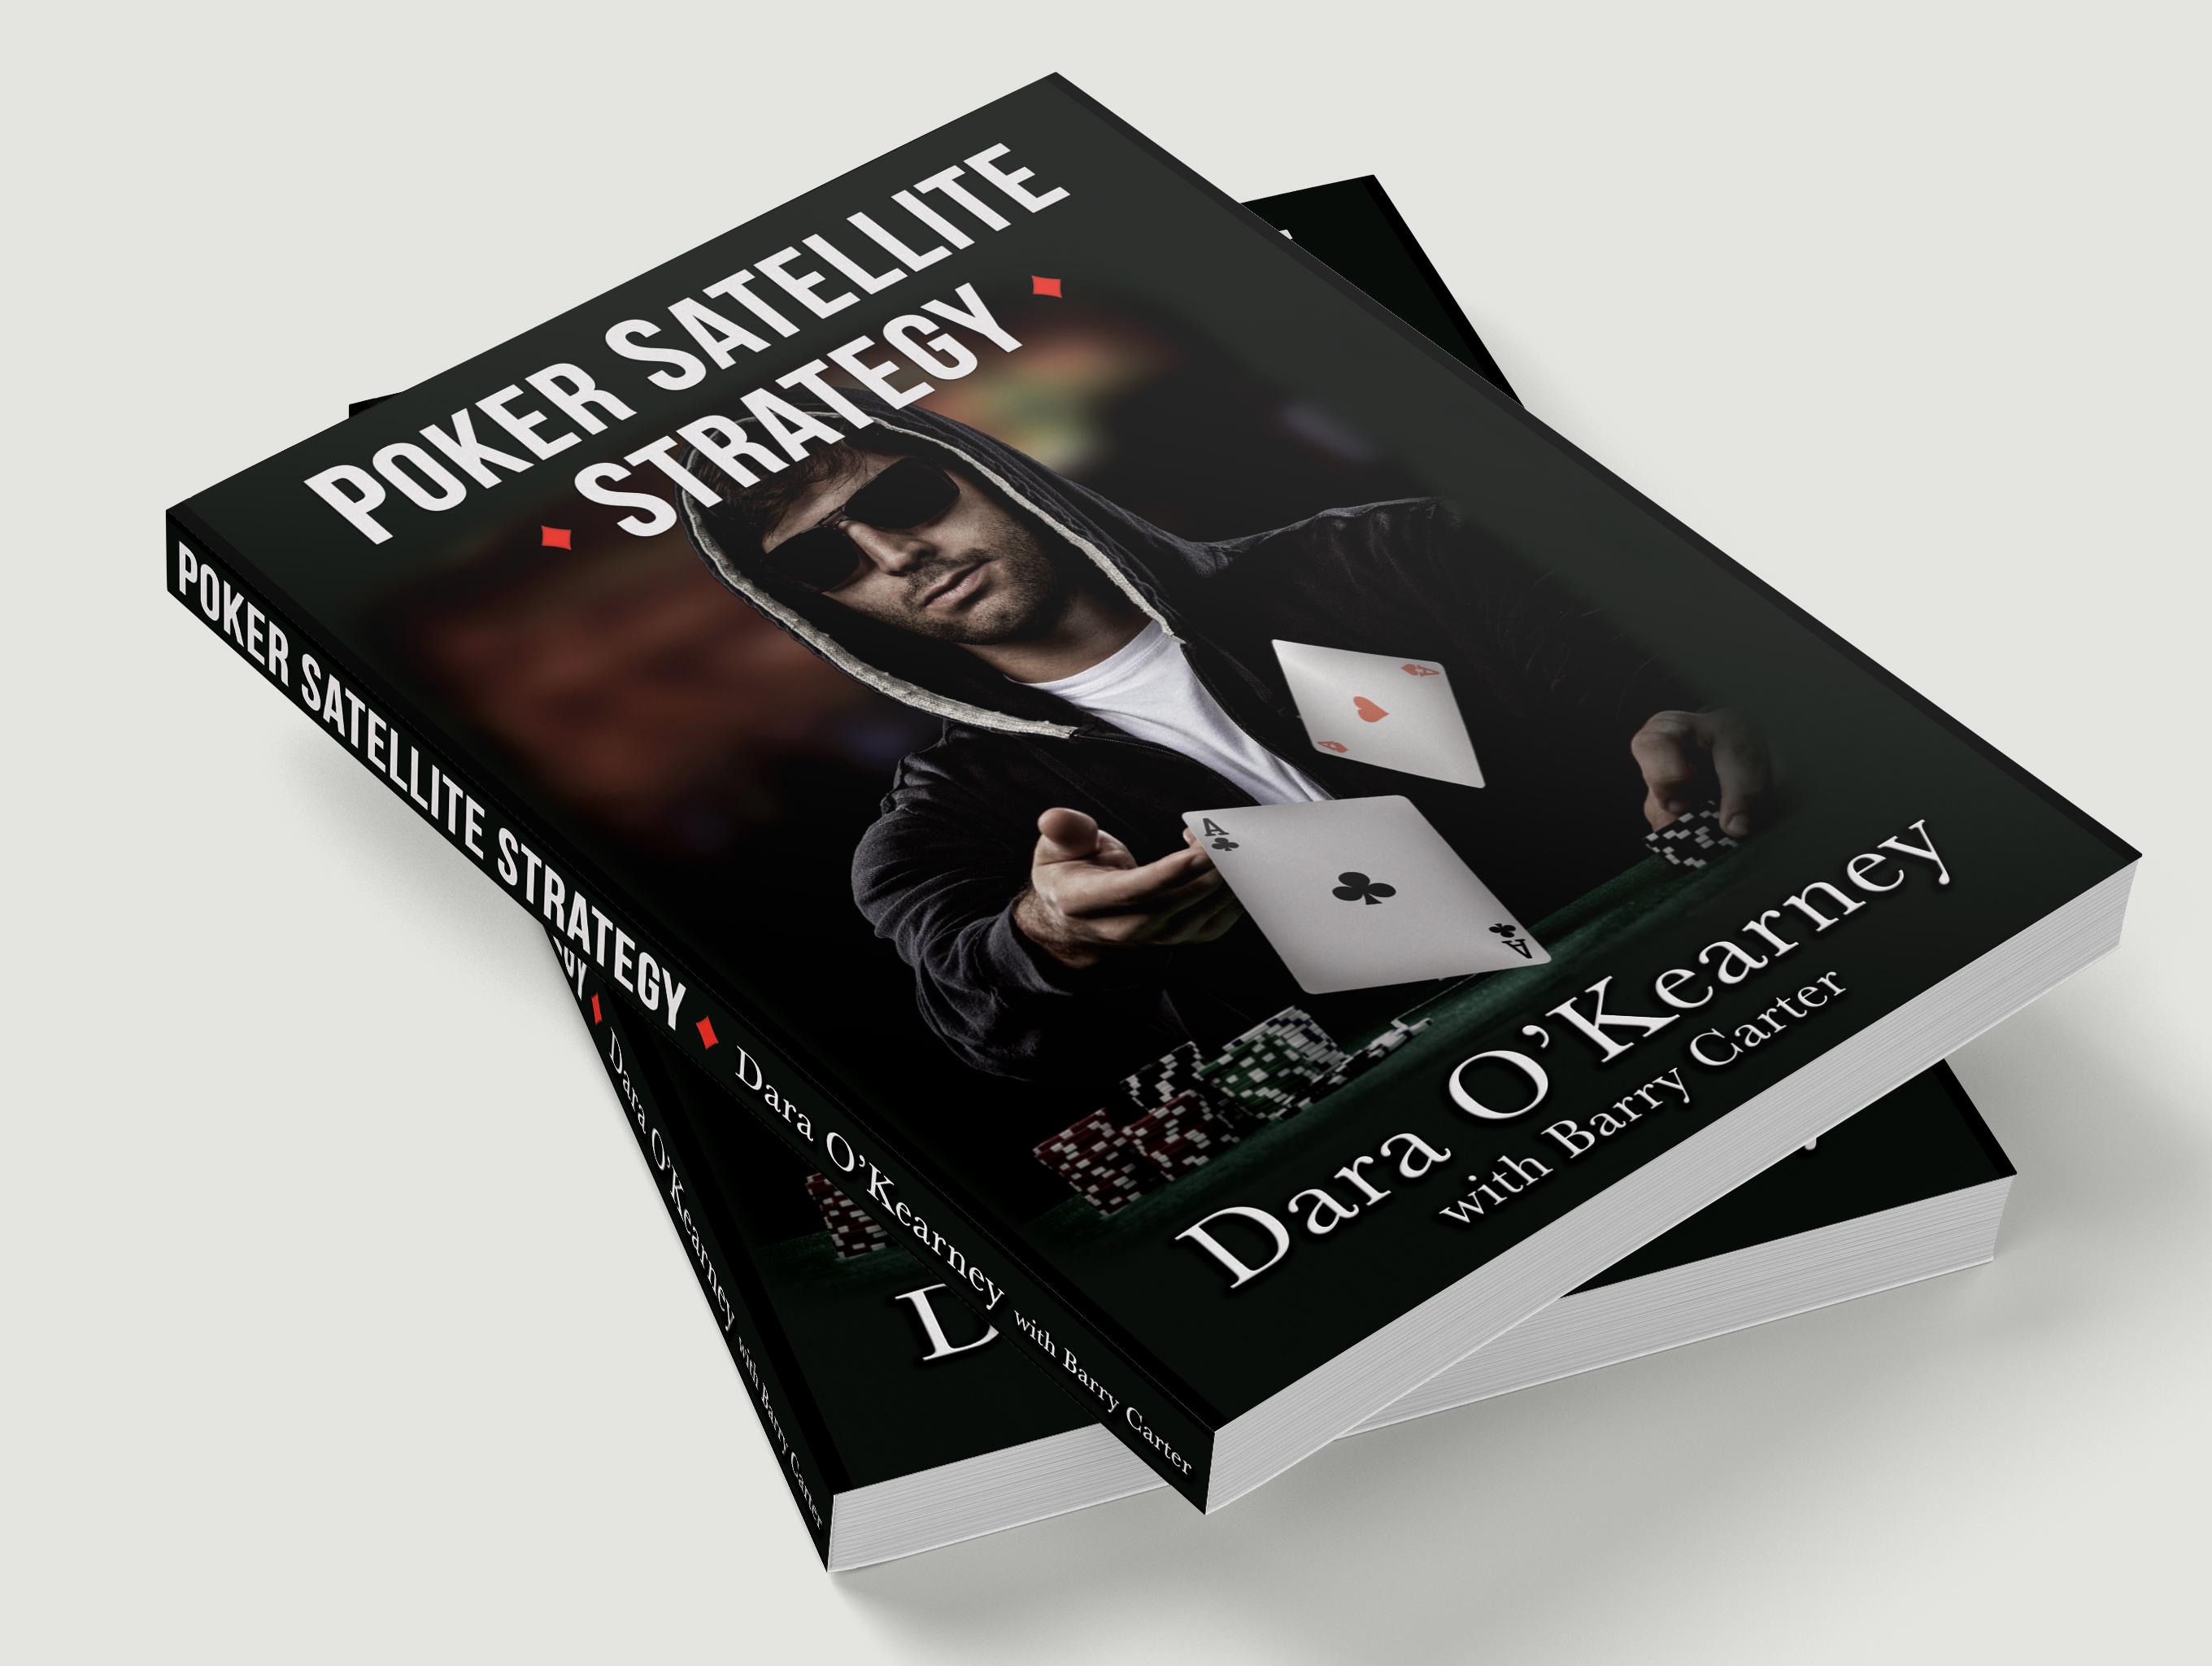 Poker Satellite Strategy book cover